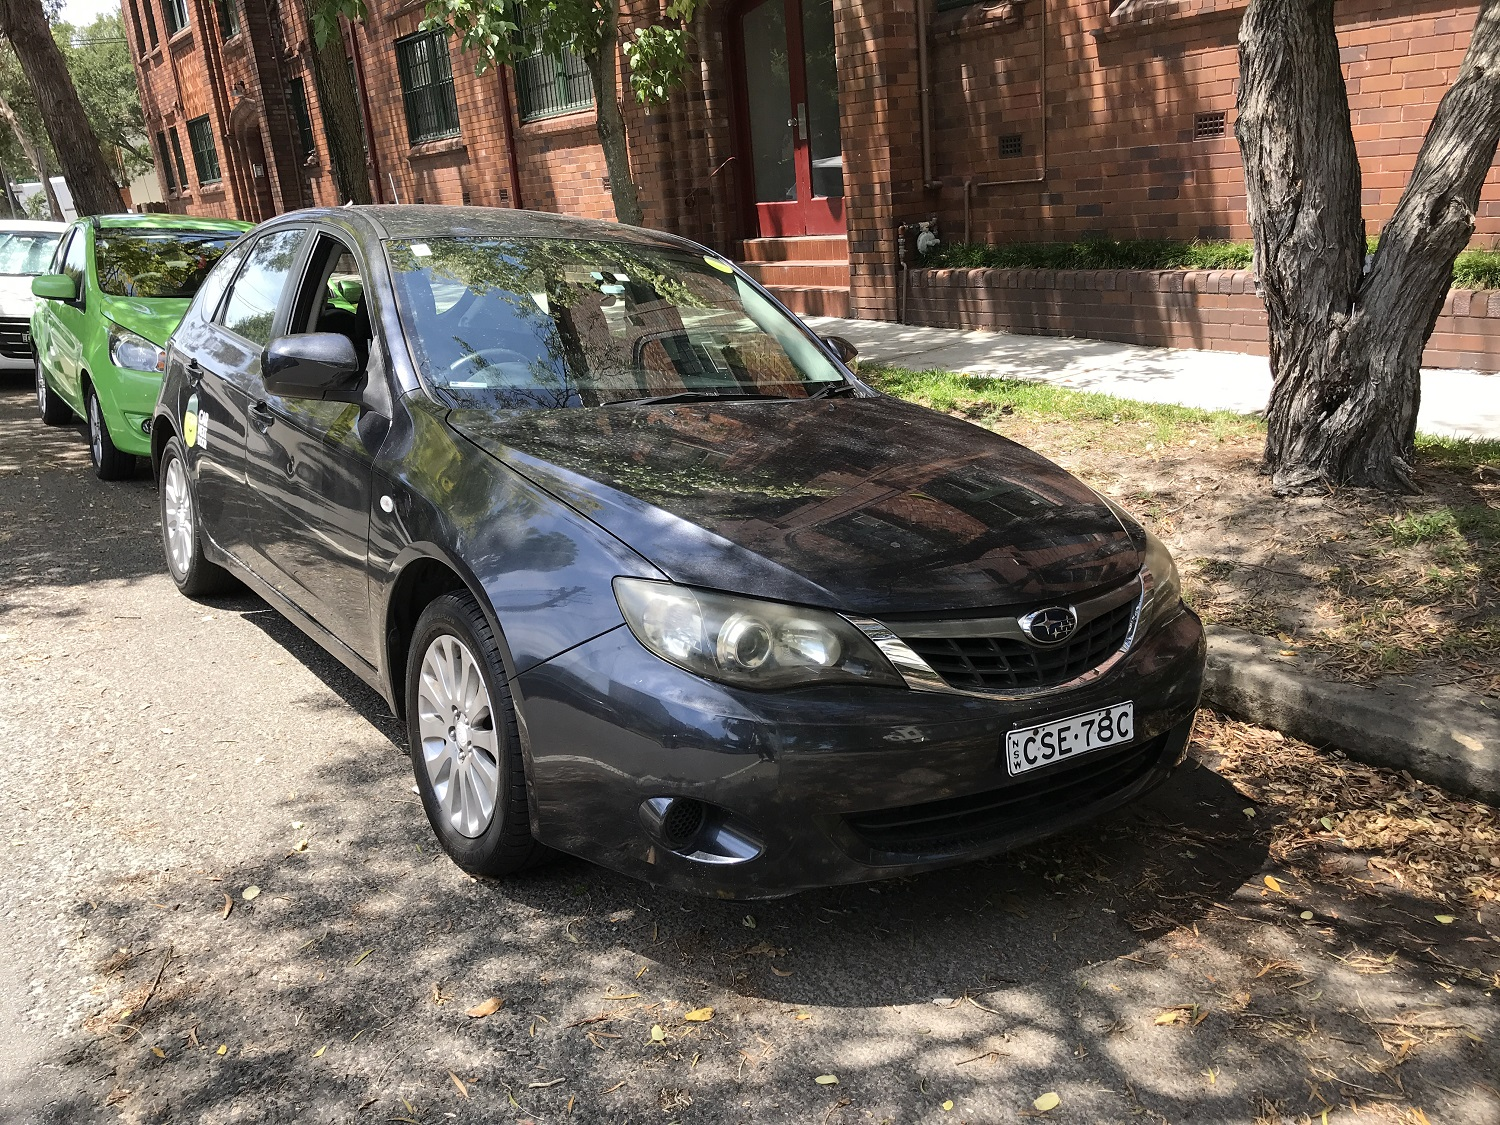 Picture of Alyson's 2009 Subaru Impreza